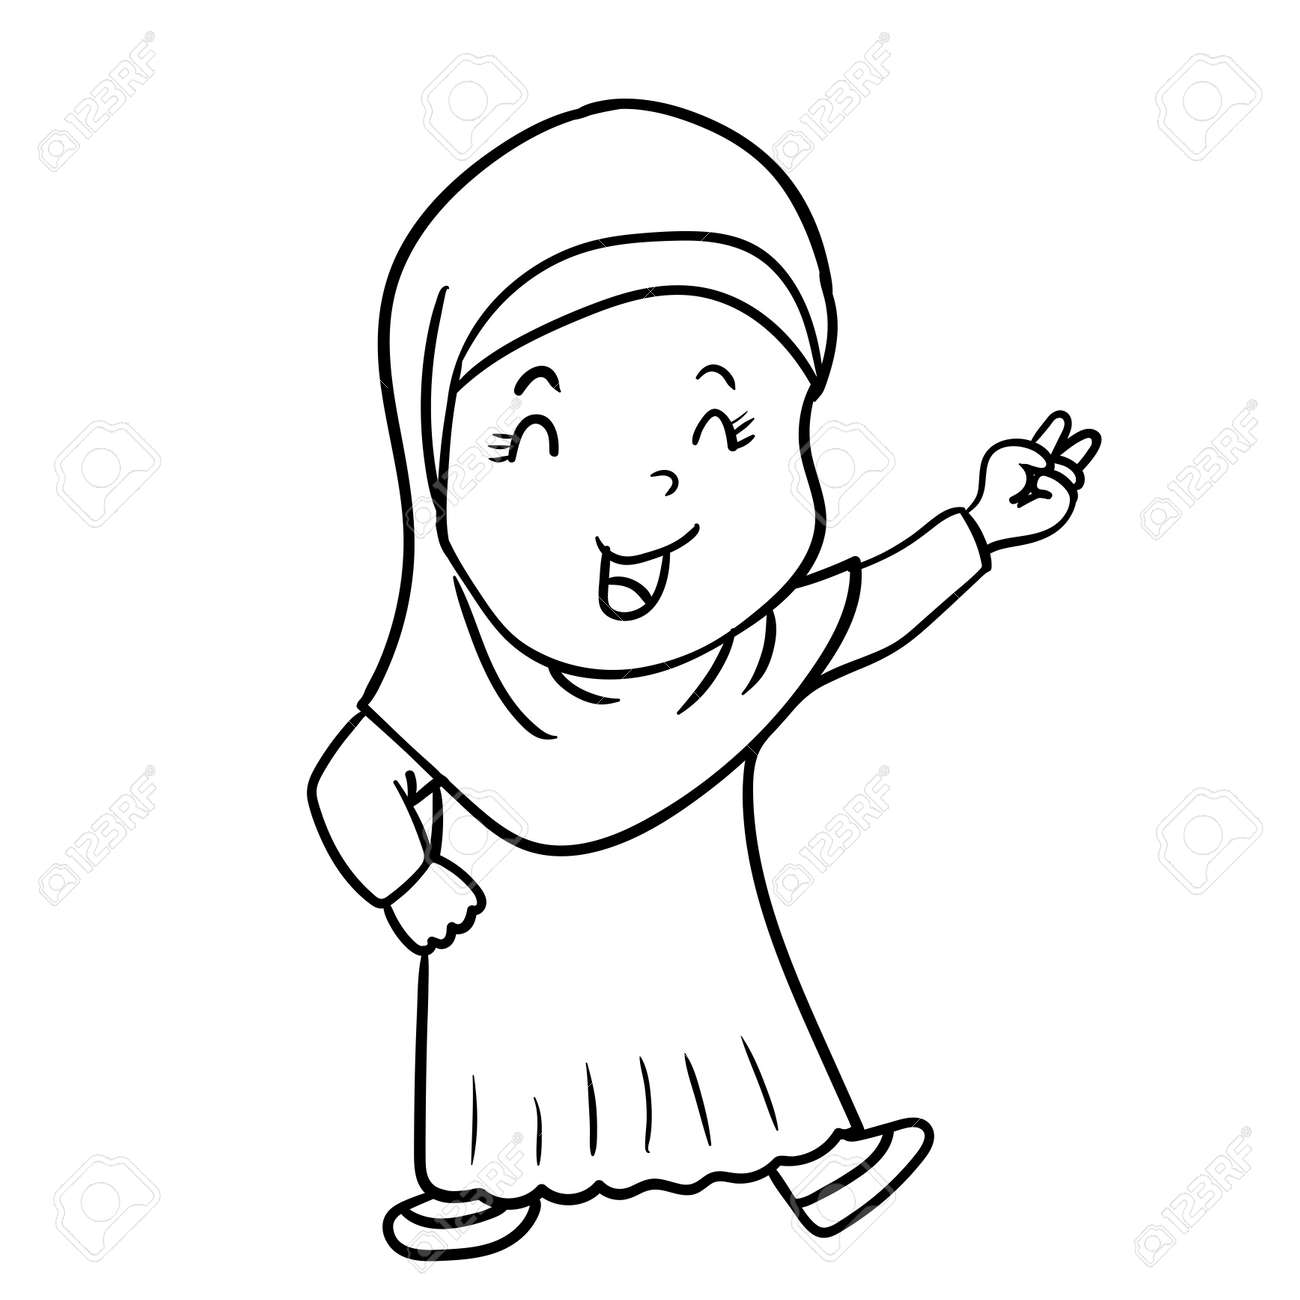 Hand drawing muslim girl cartoon with victory sign isolated on white background black and